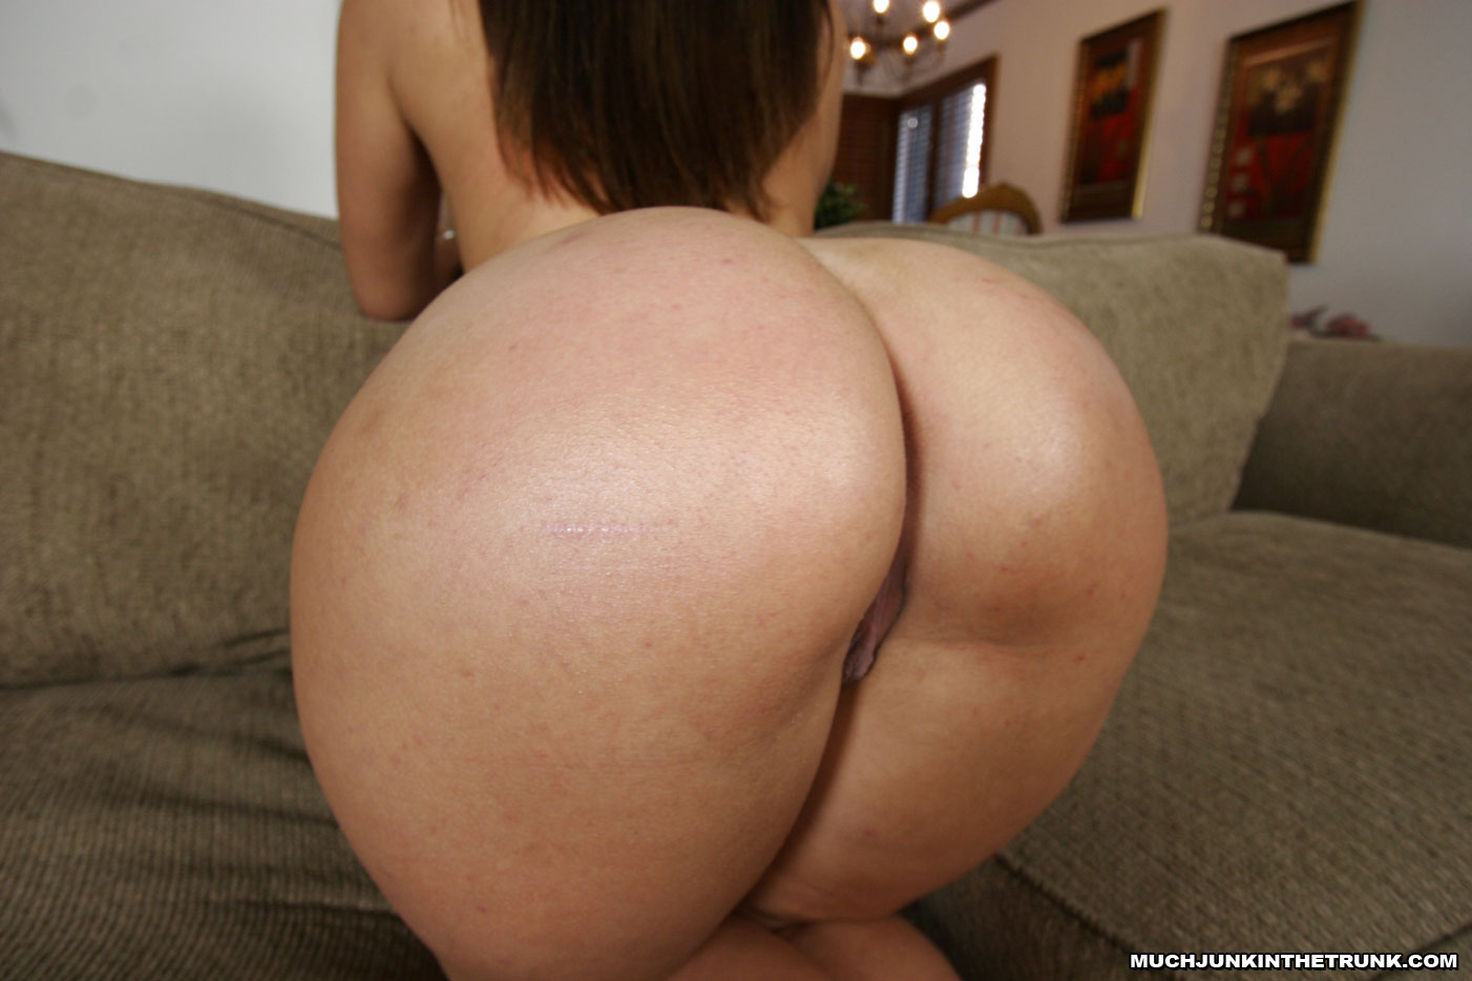 Big ass mature porn pictures